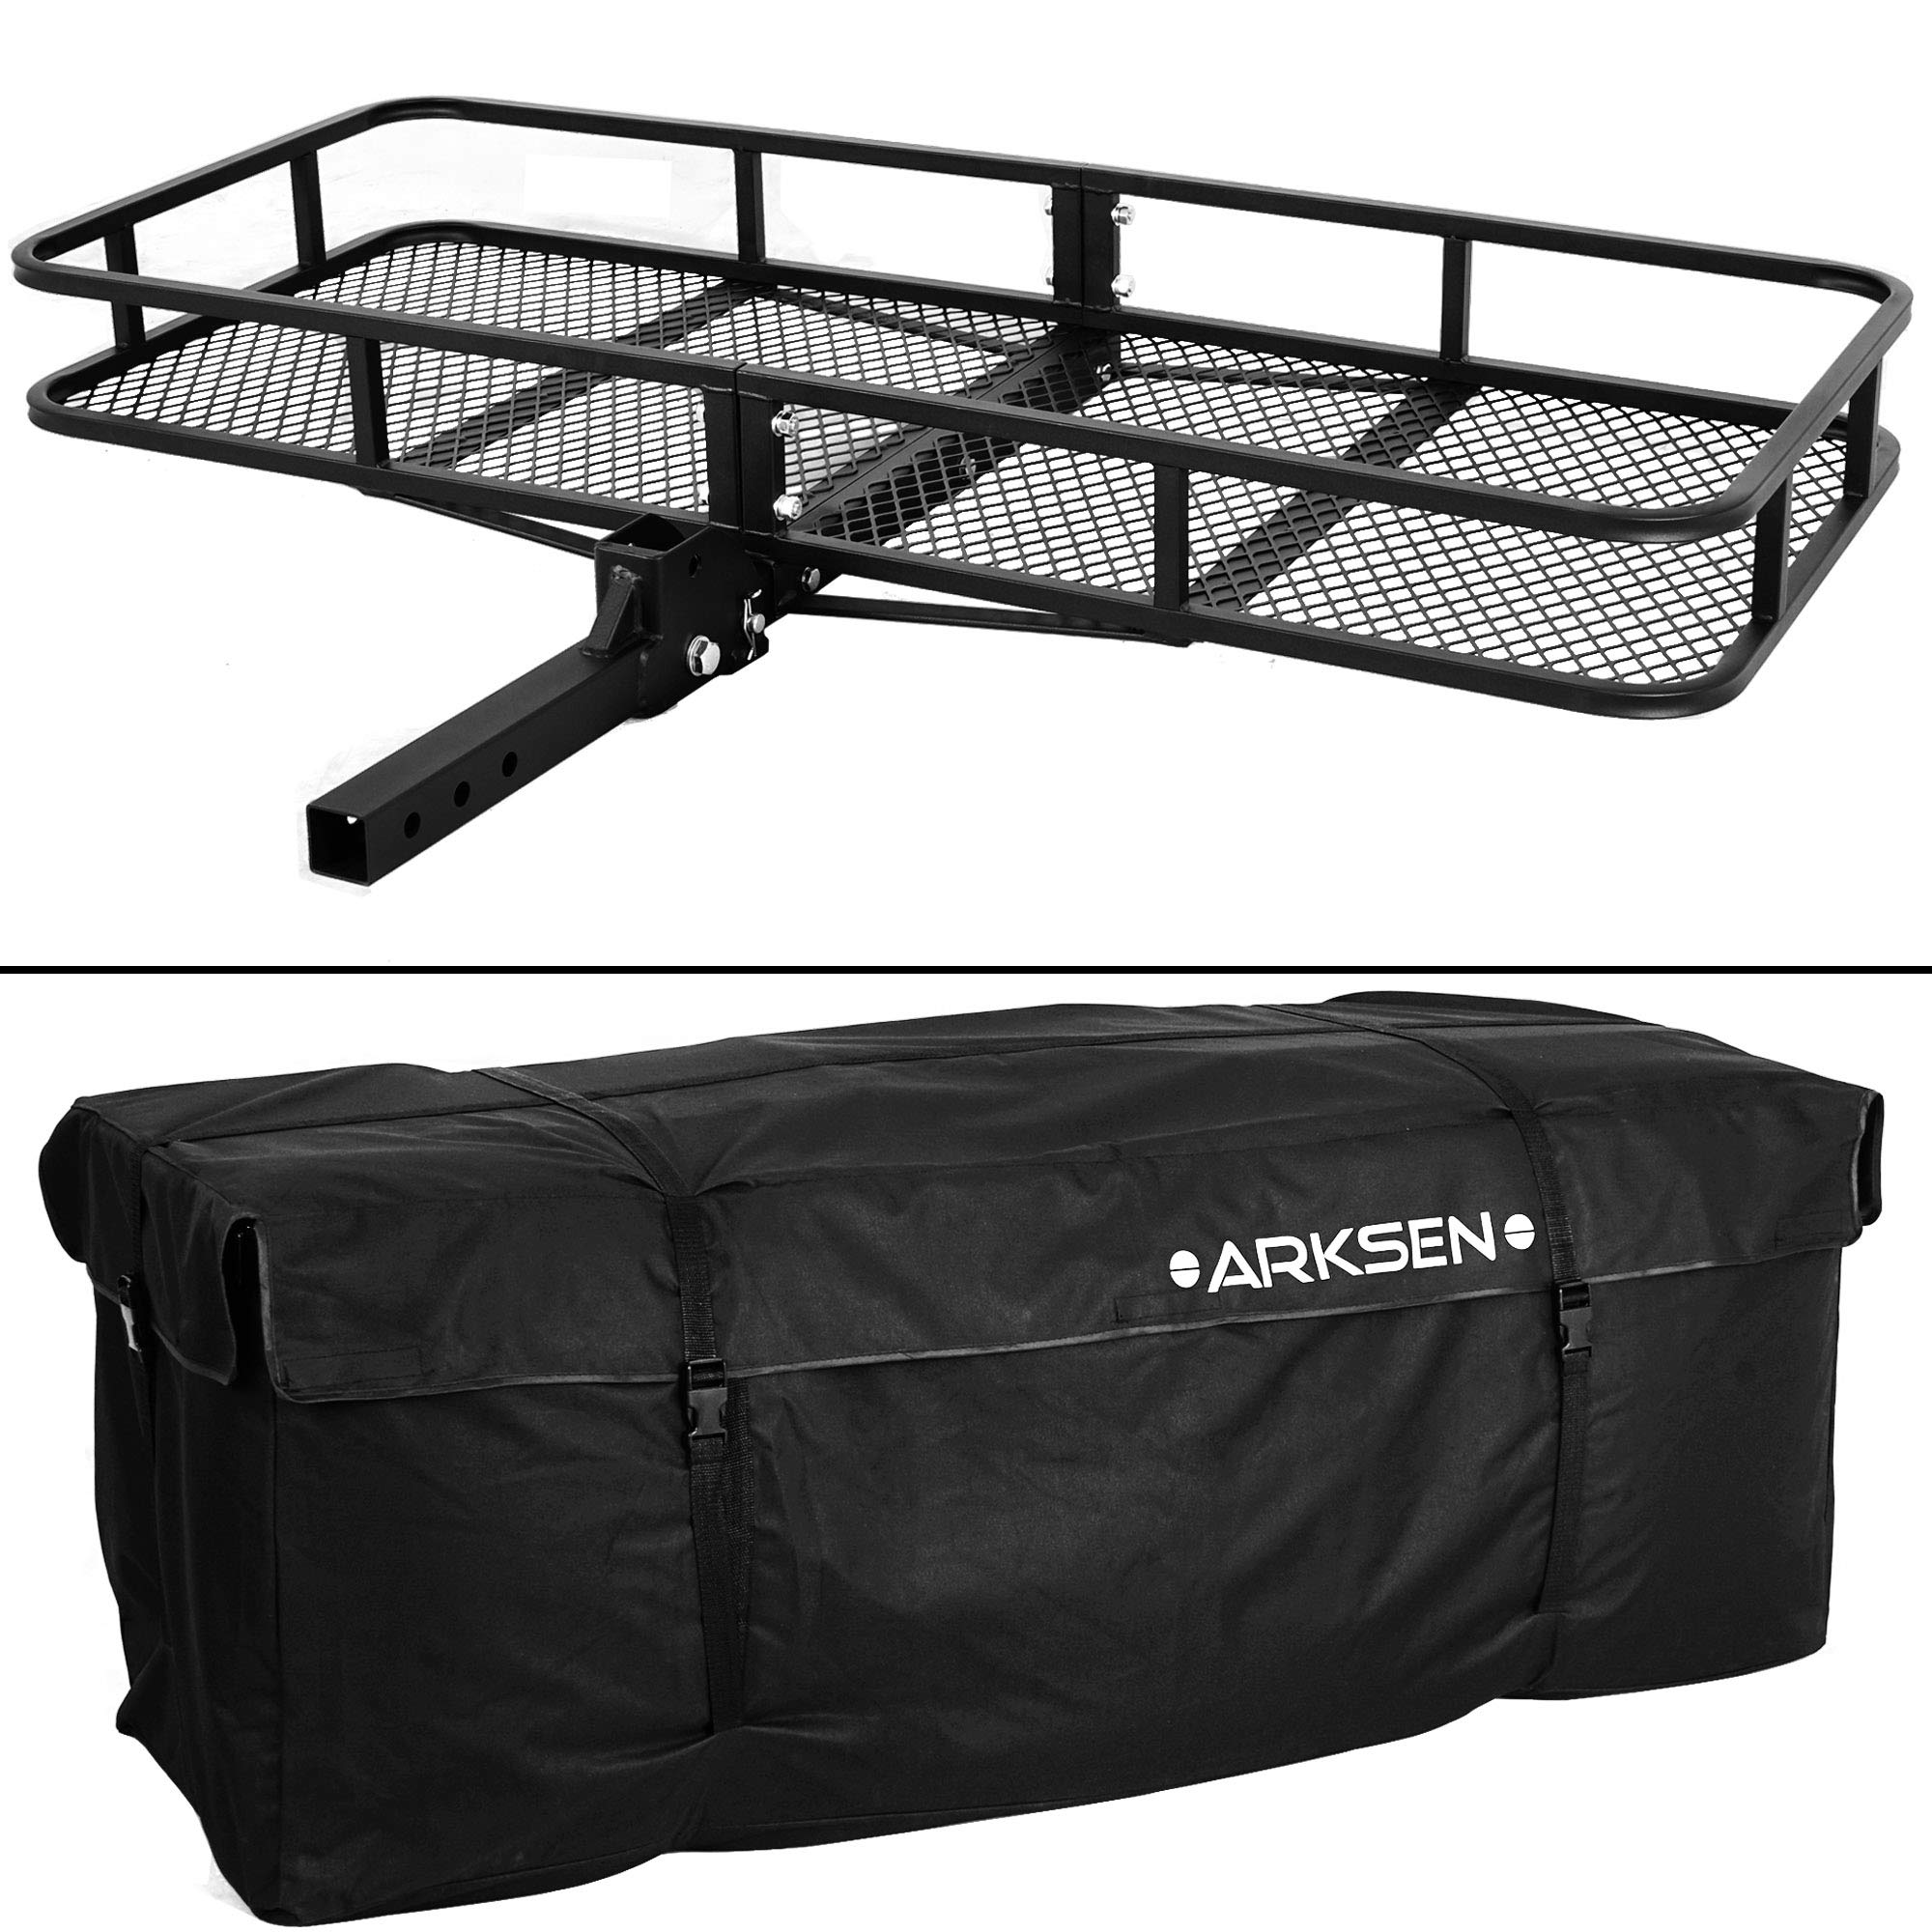 """ARKSEN 8"""" x 8-8/8"""" inch Cargo Hauler Carrier Hitch Mounted Luggage Basket  with Cargo Bag Combo 8"""" Receiver Camping RV SUV"""